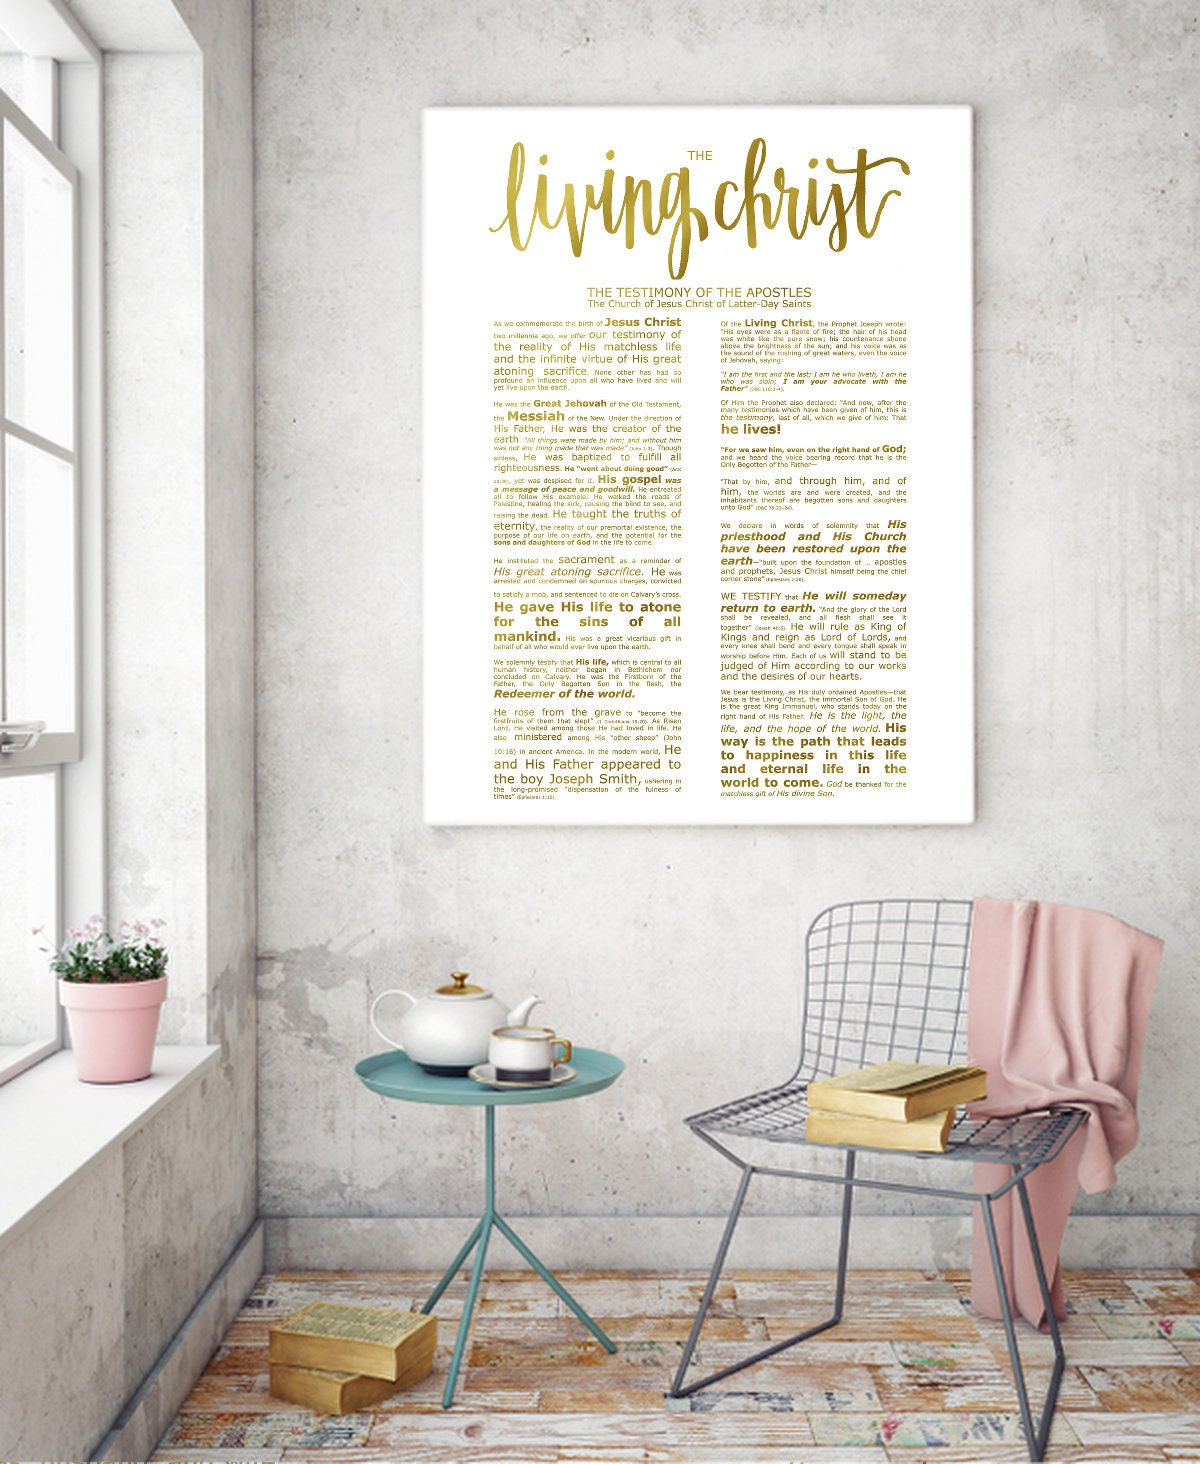 graphic regarding The Living Christ Printable identify The Dwelling Christ, Ground breaking Emphasised, Innovative LDS Printable